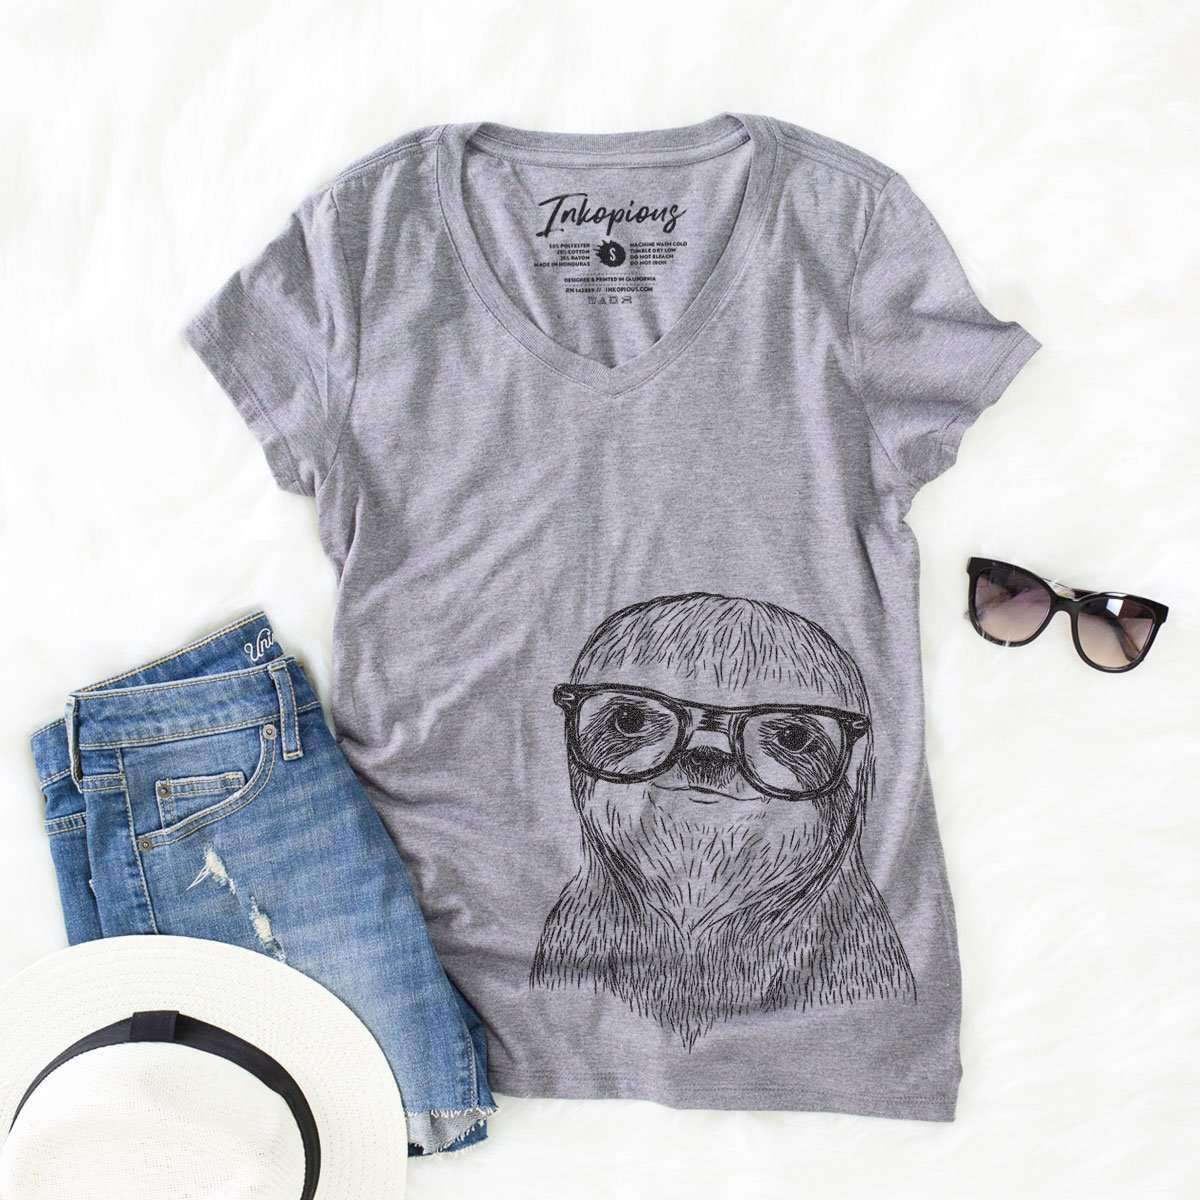 Sidney the Sloth - Women's Modern Fit V-neck Shirt